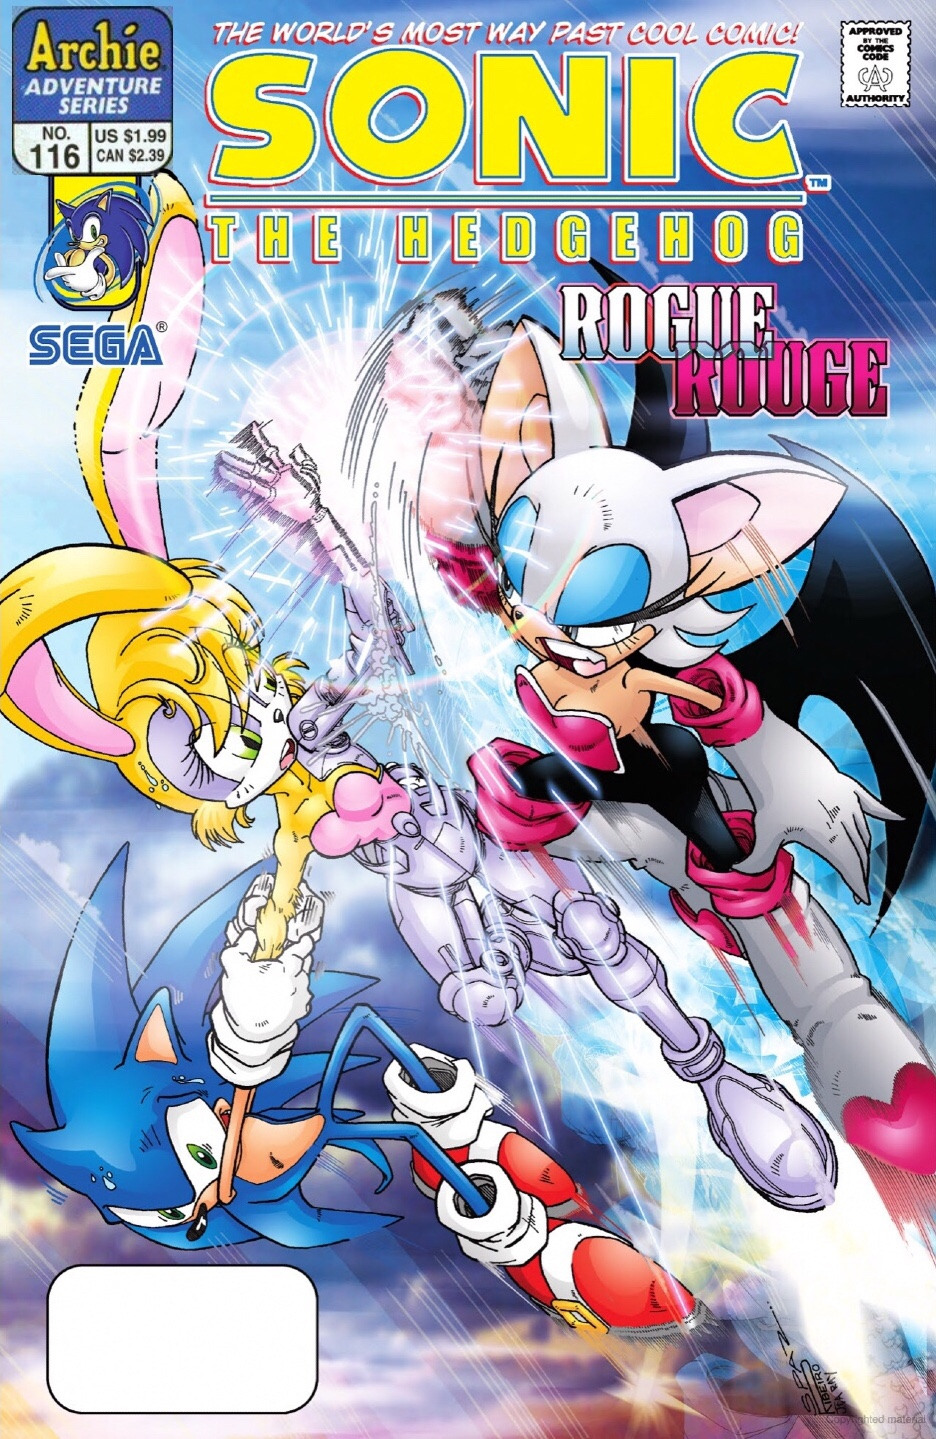 Archie Sonic the Hedgehog Issue 116